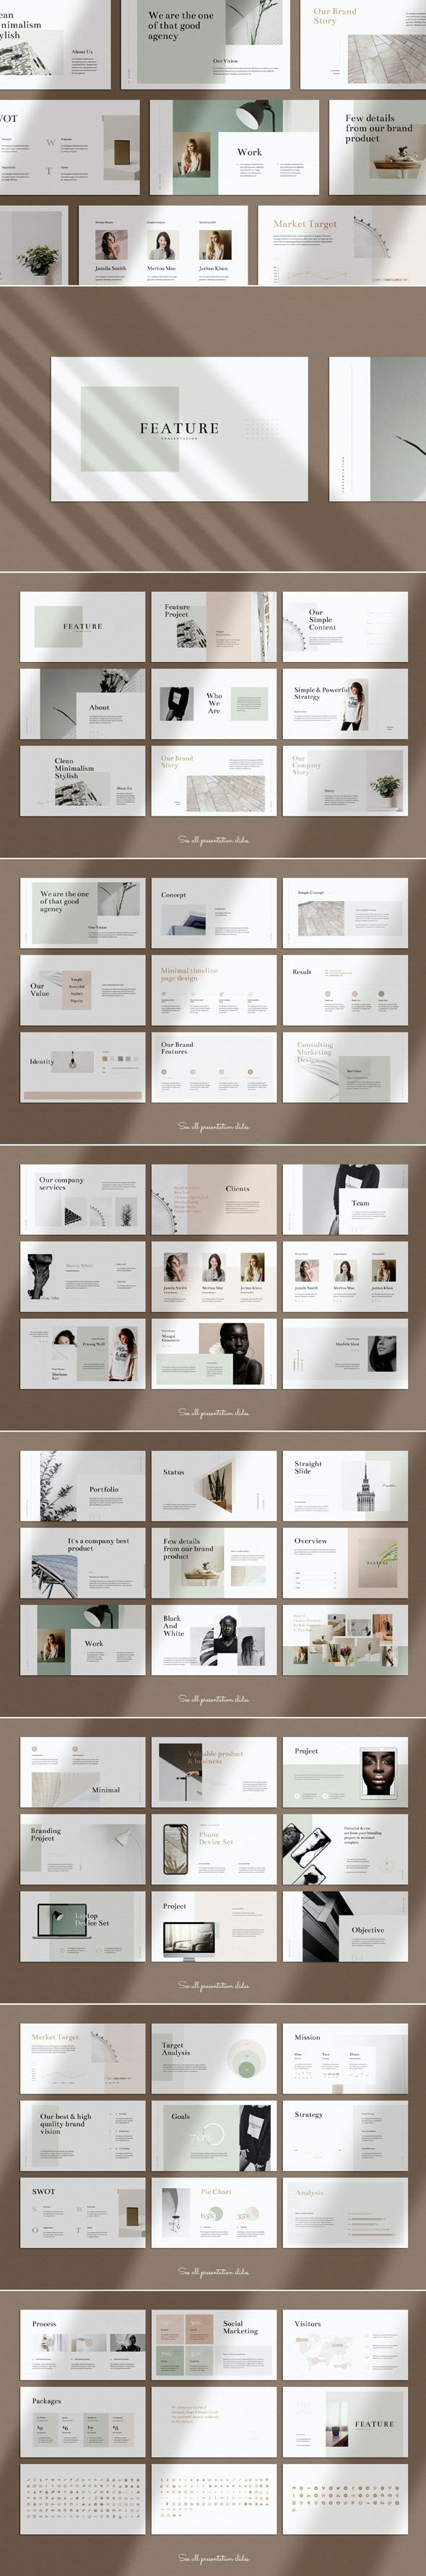 Feature Minimal PowerPoint Presentation Template - Business PowerPoint Templates